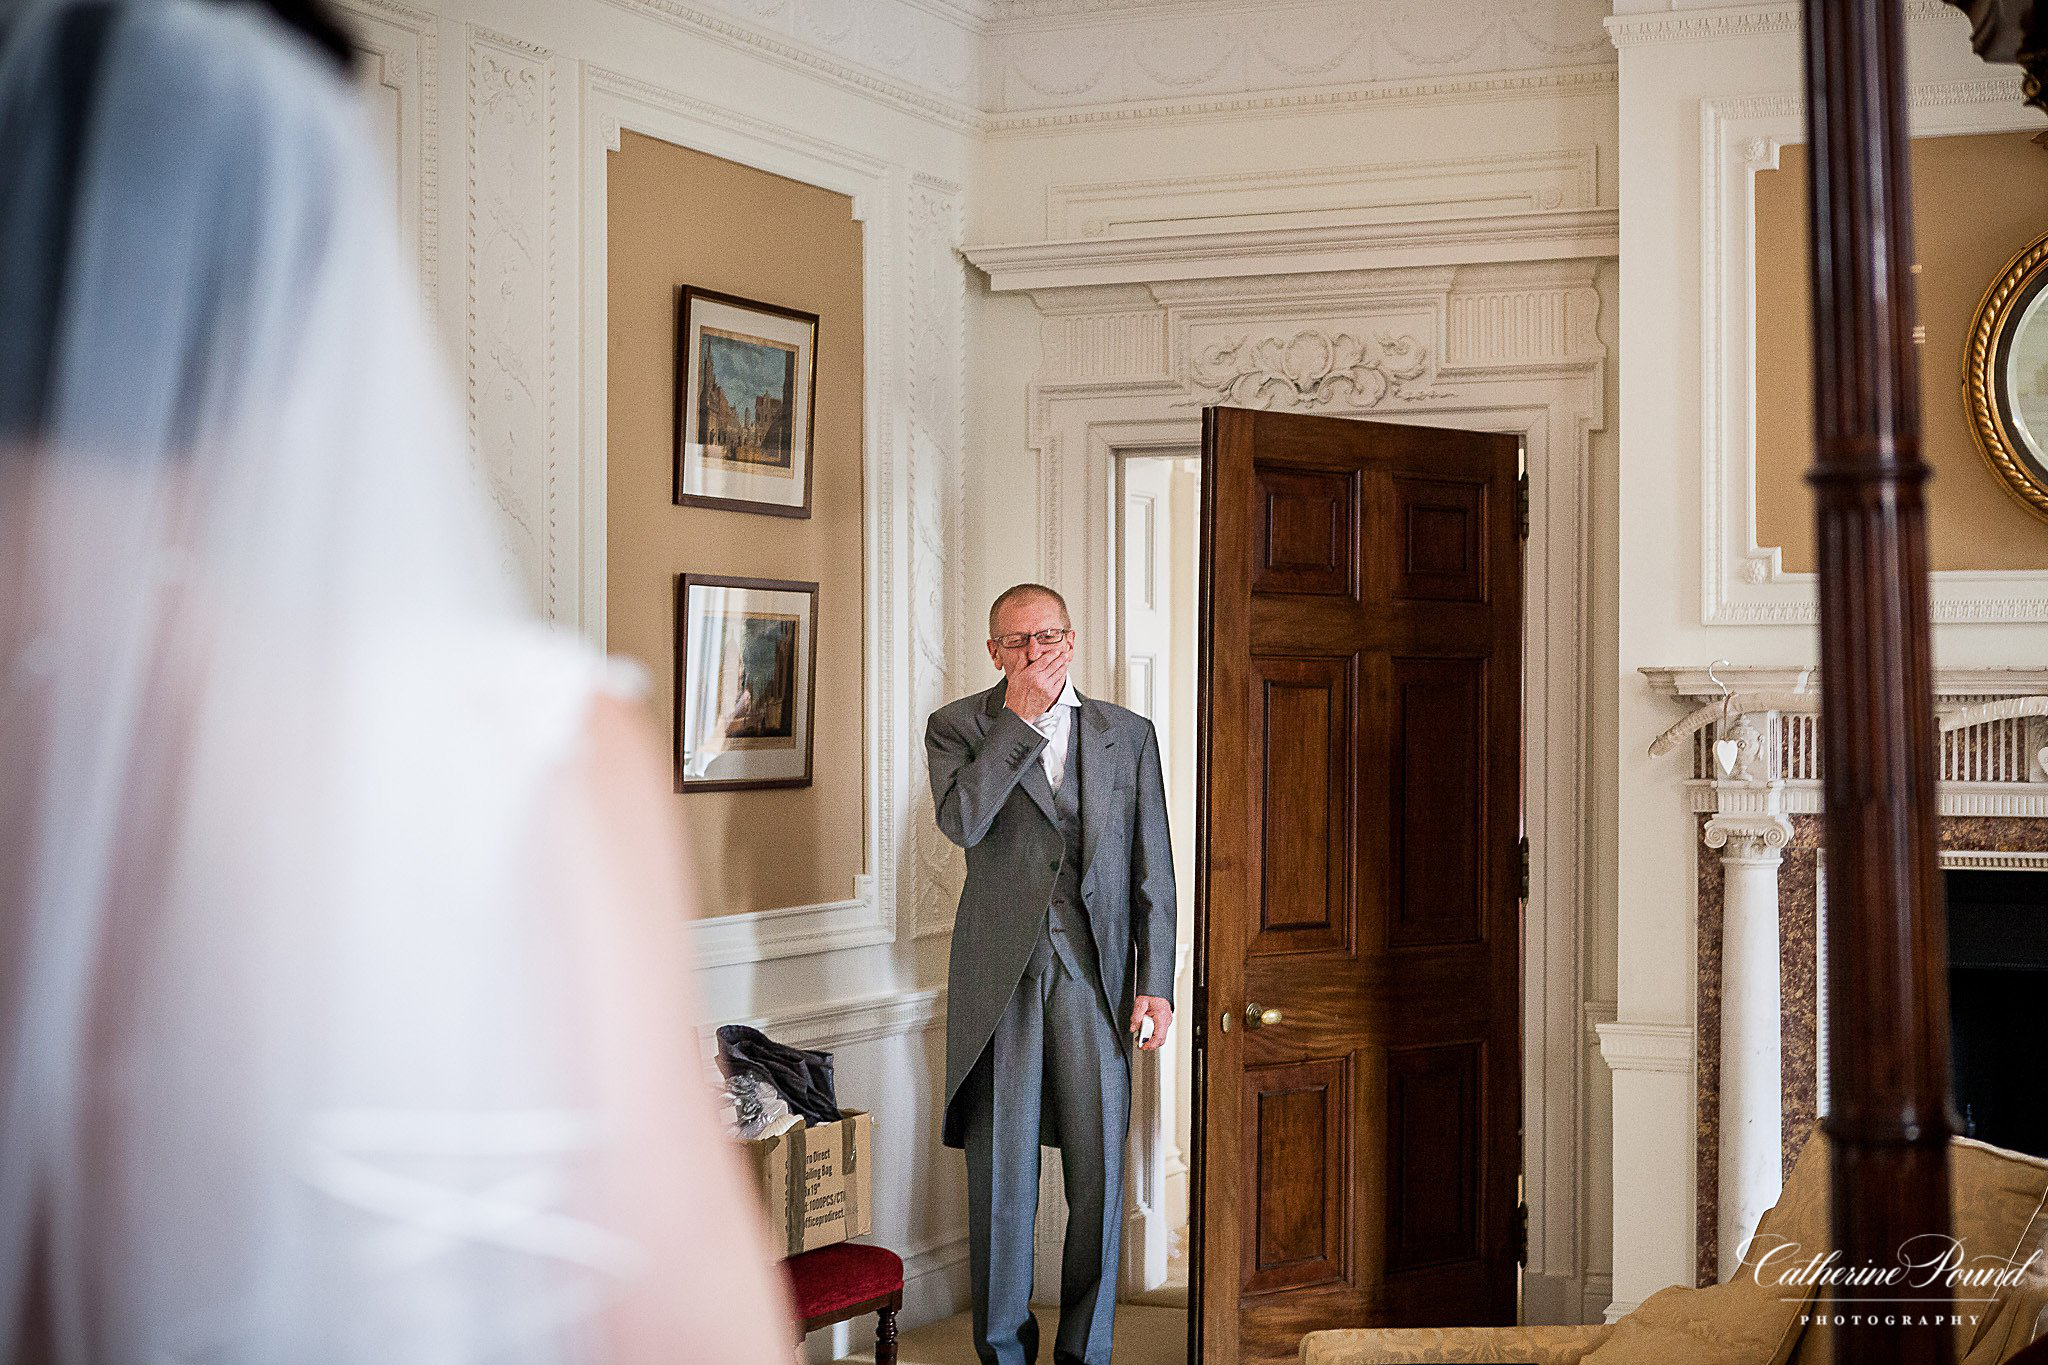 Father of the bride sees his daughter in wedding dress